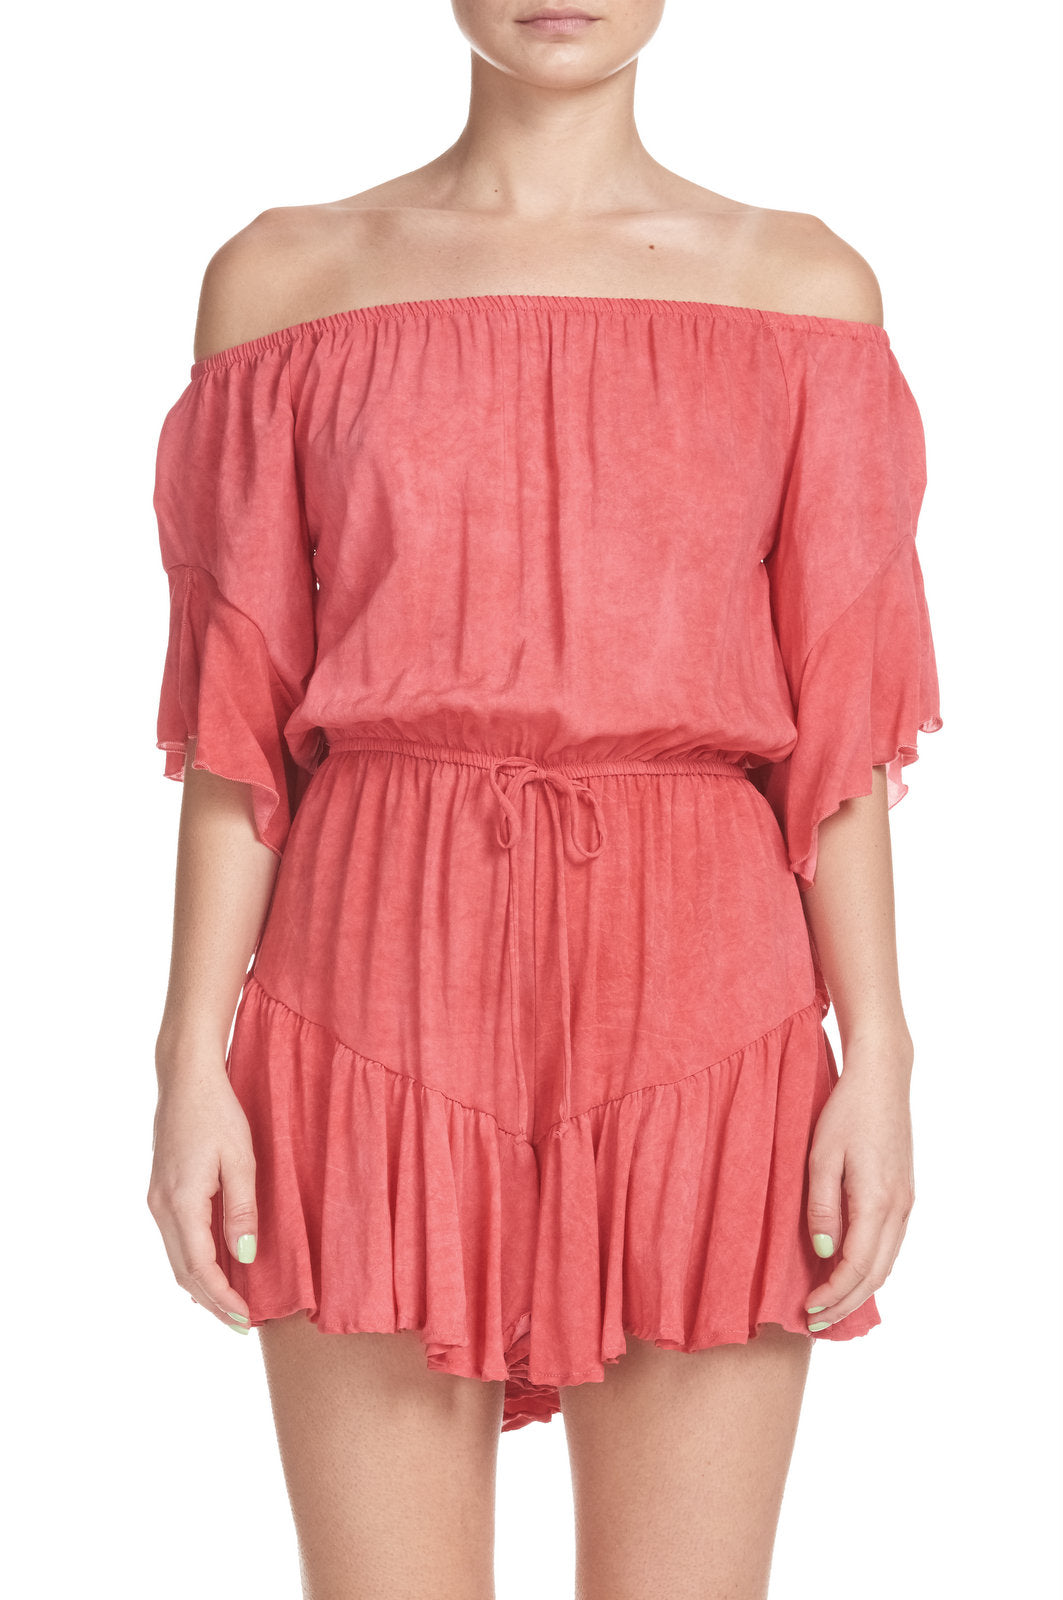 Romper wtih Ruffle Shorts and 3/4 Sleeves